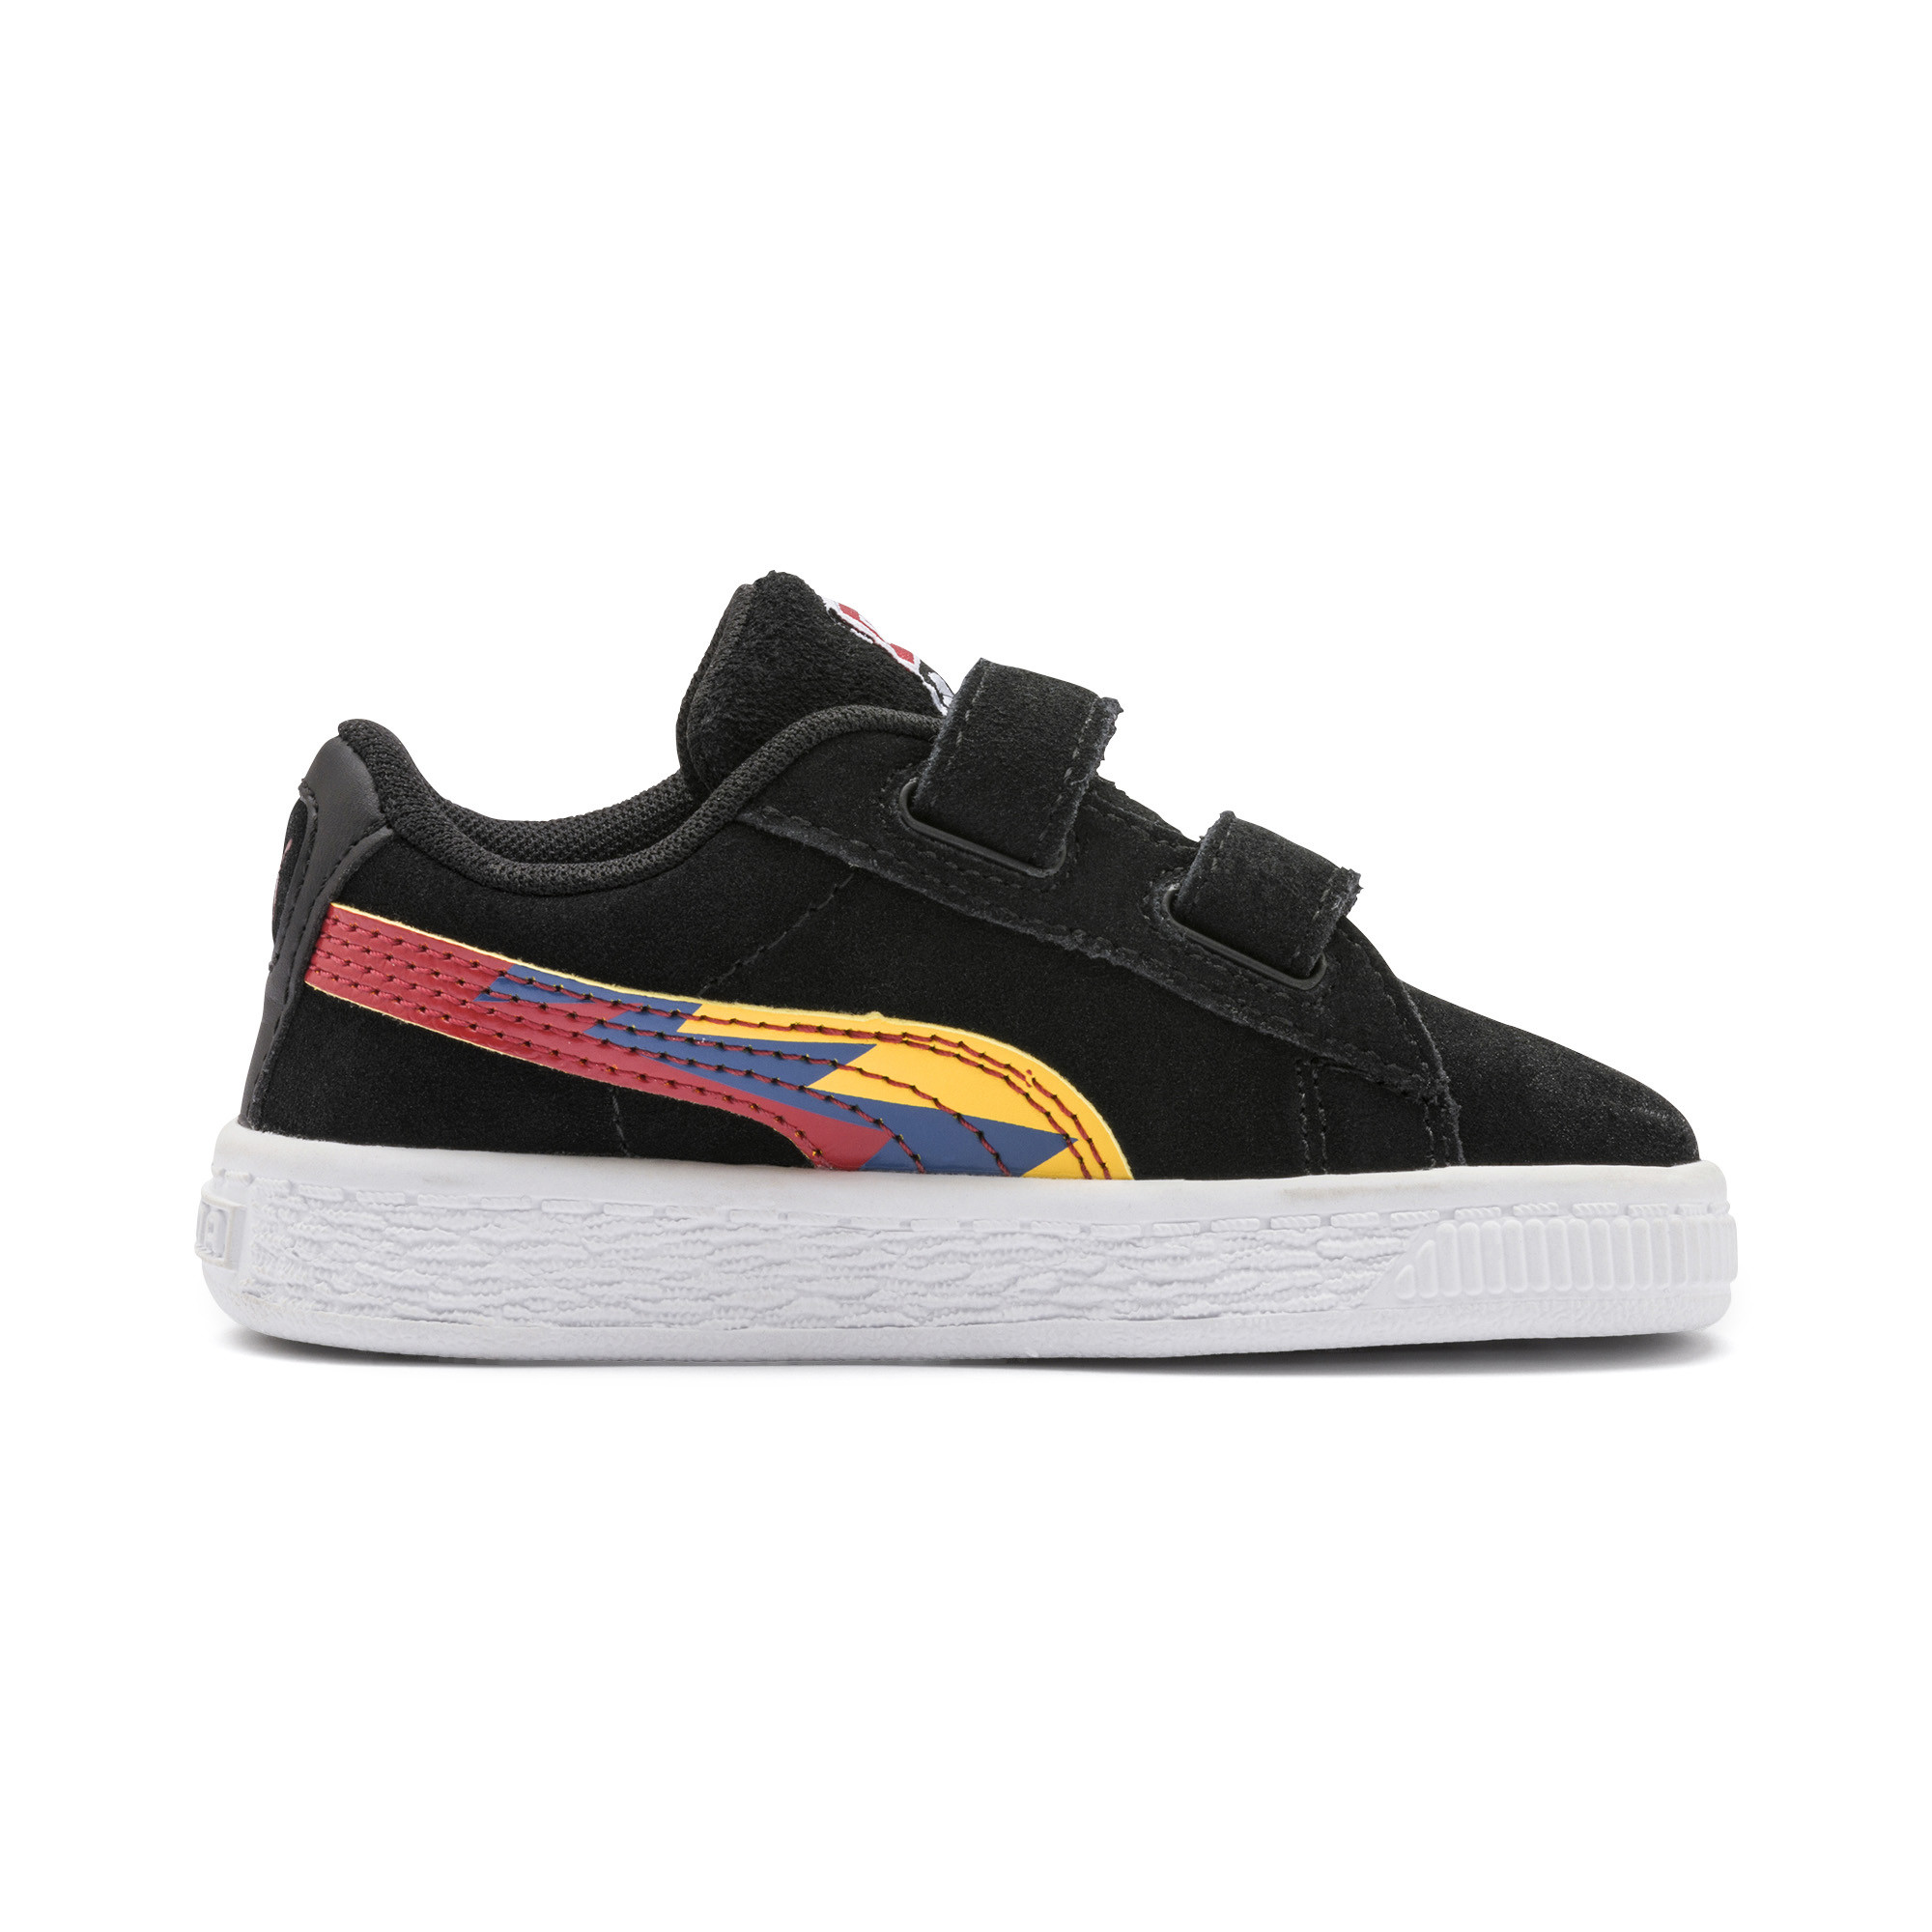 PUMA Suede Classic Lightning Toddler Shoes Boys Shoe Kids ...